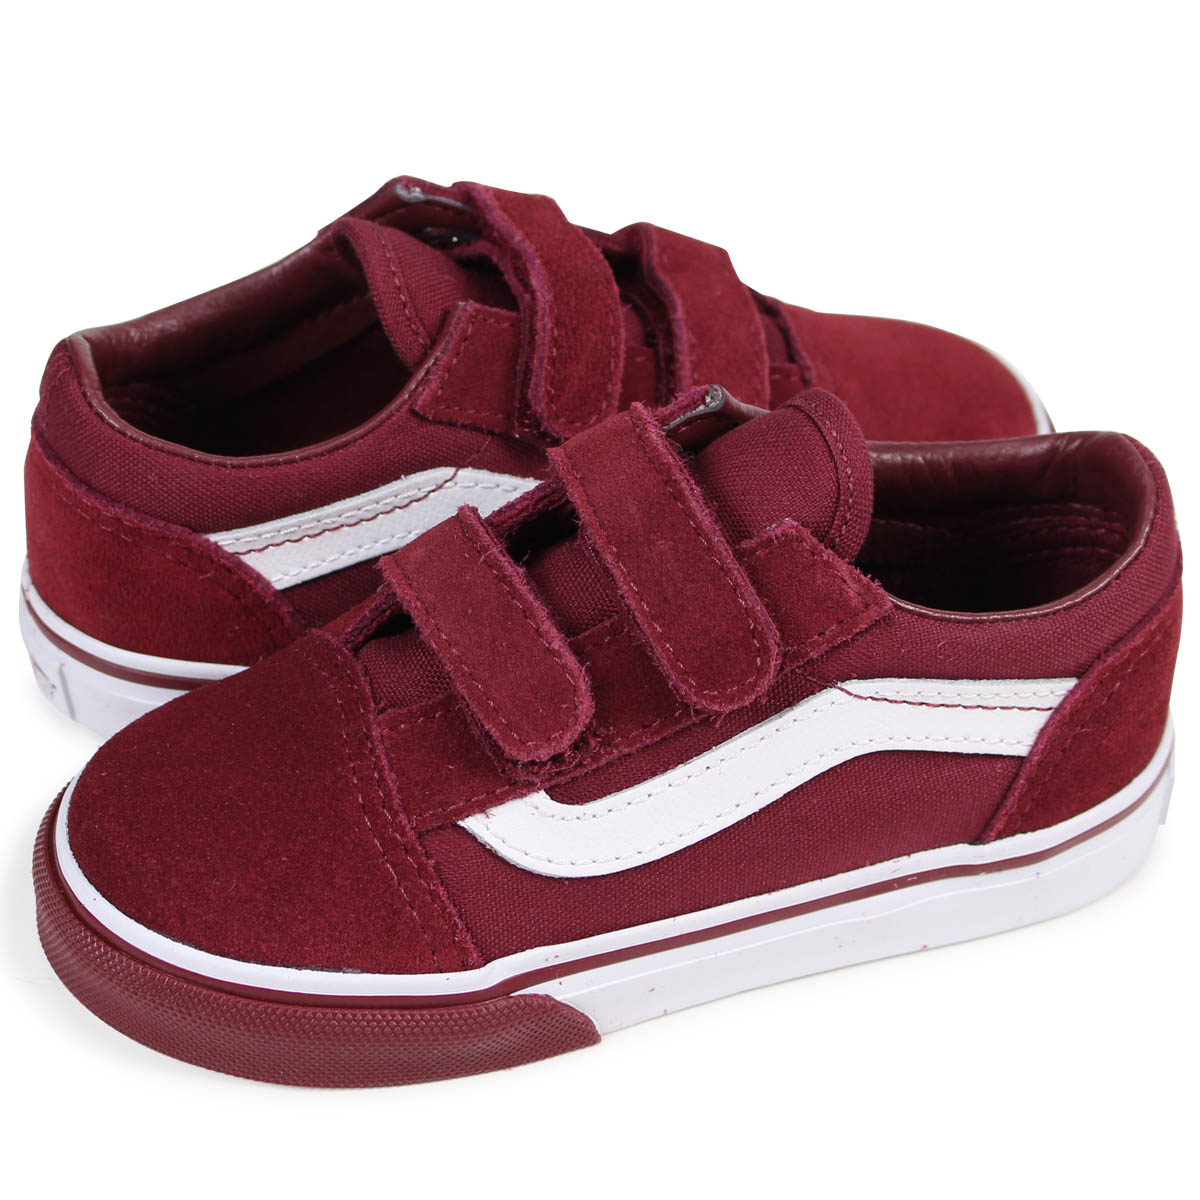 e4ccc9943b85 VANS TODDLER OLD SKOOL VELCRO old school sneakers baby vans station wagons  VN0A344KQ7H dark red  2 16 Shinnyu load   182